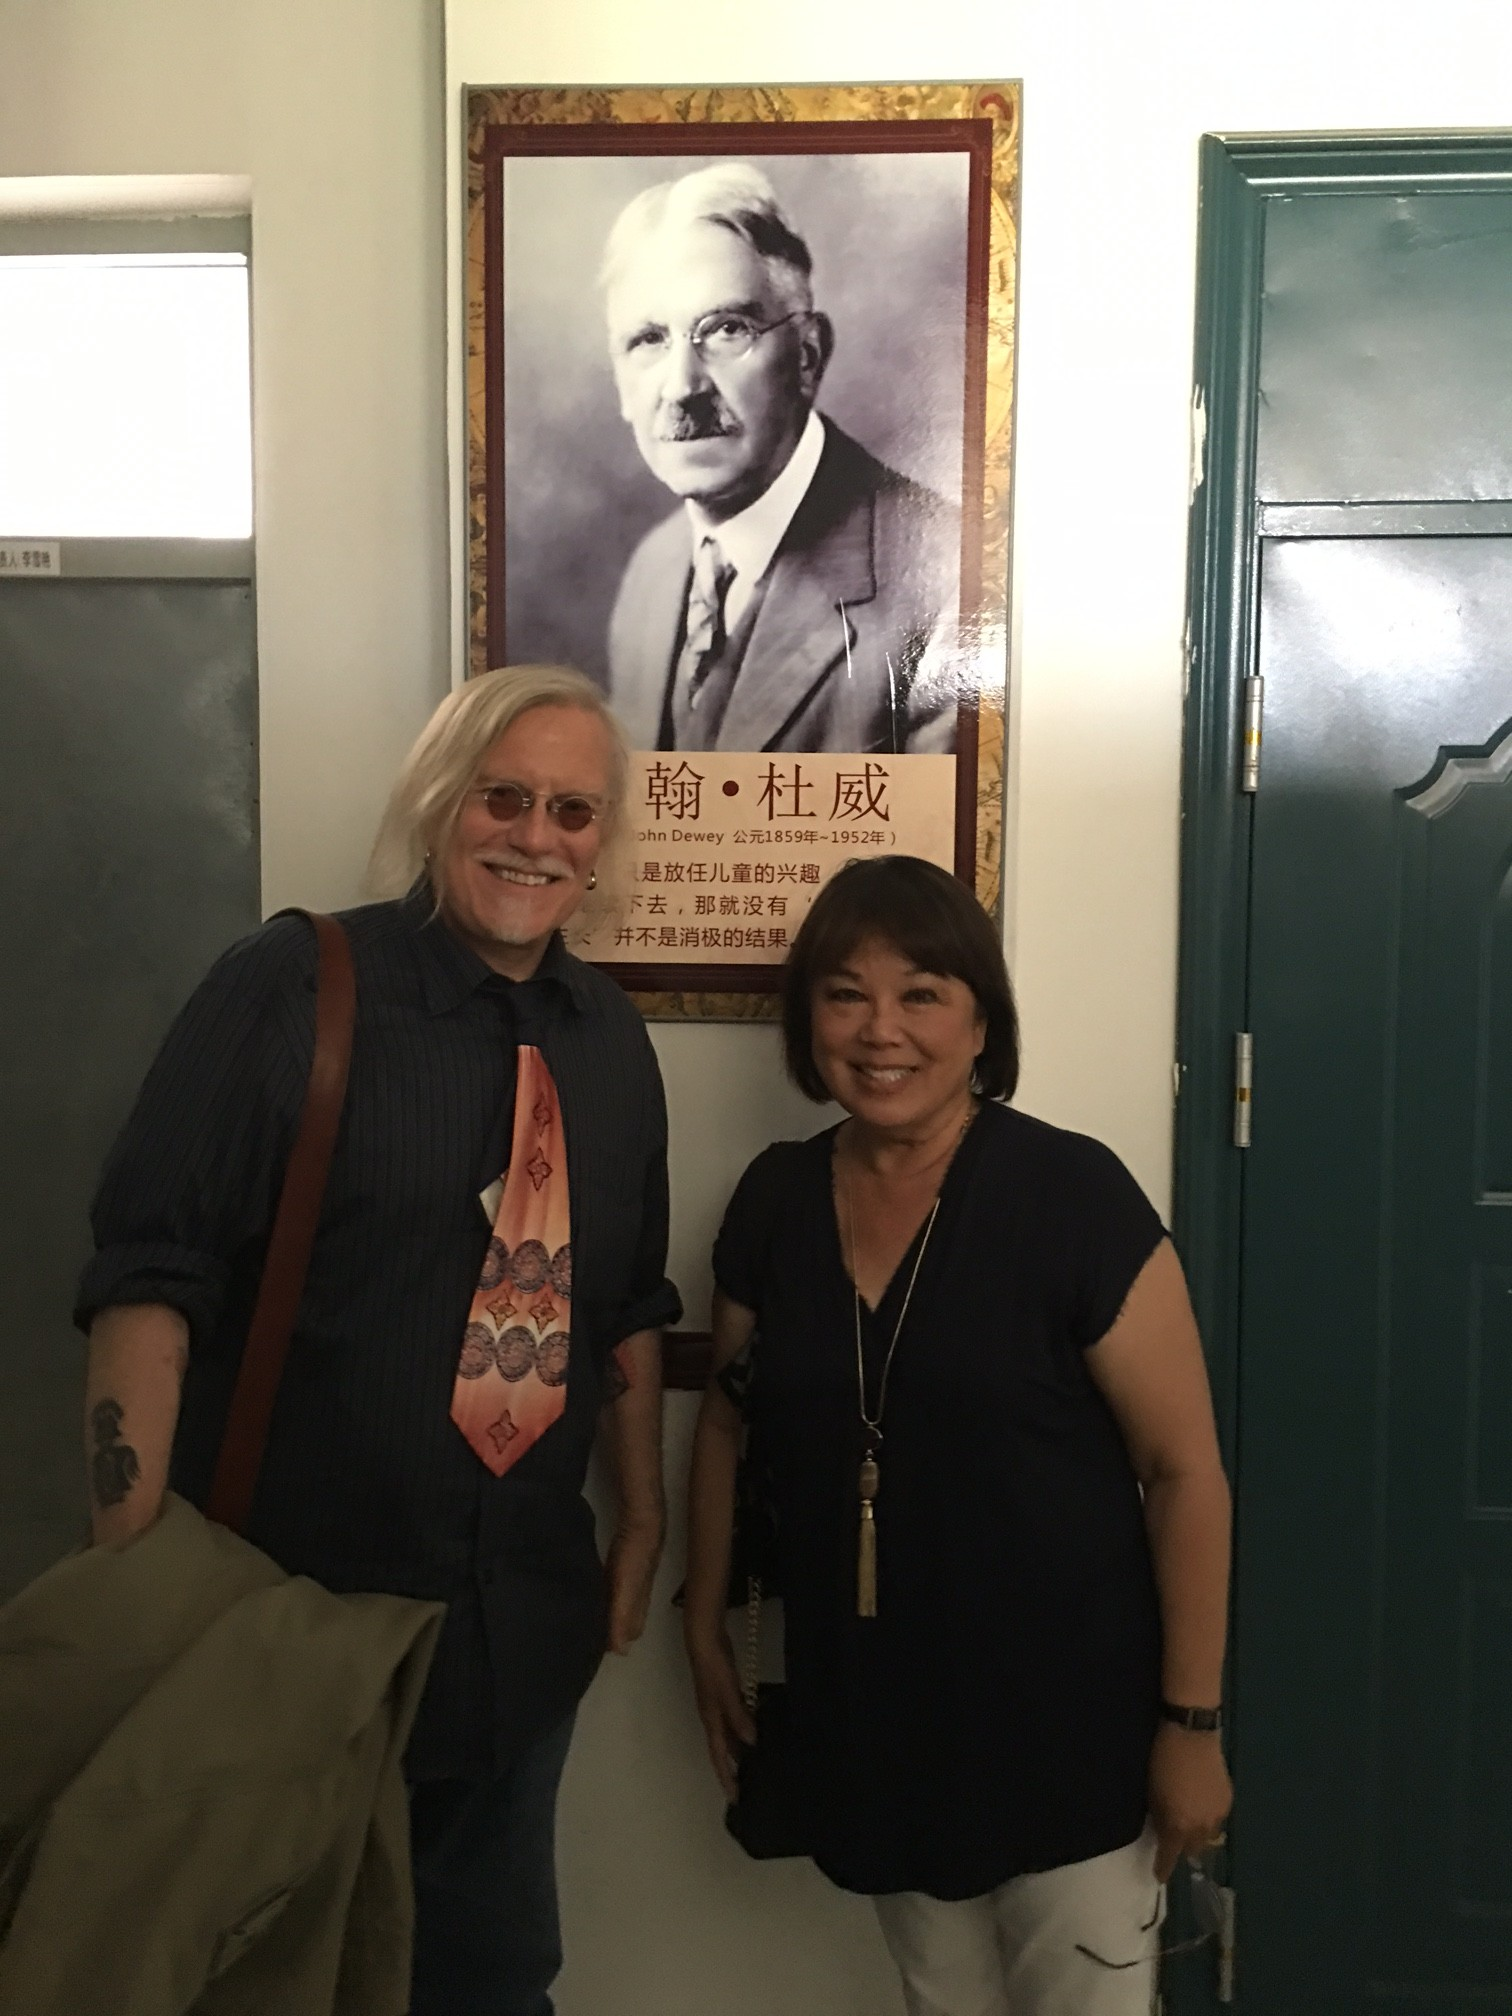 Peter and  Suzi in Siping, with image of John Dewey